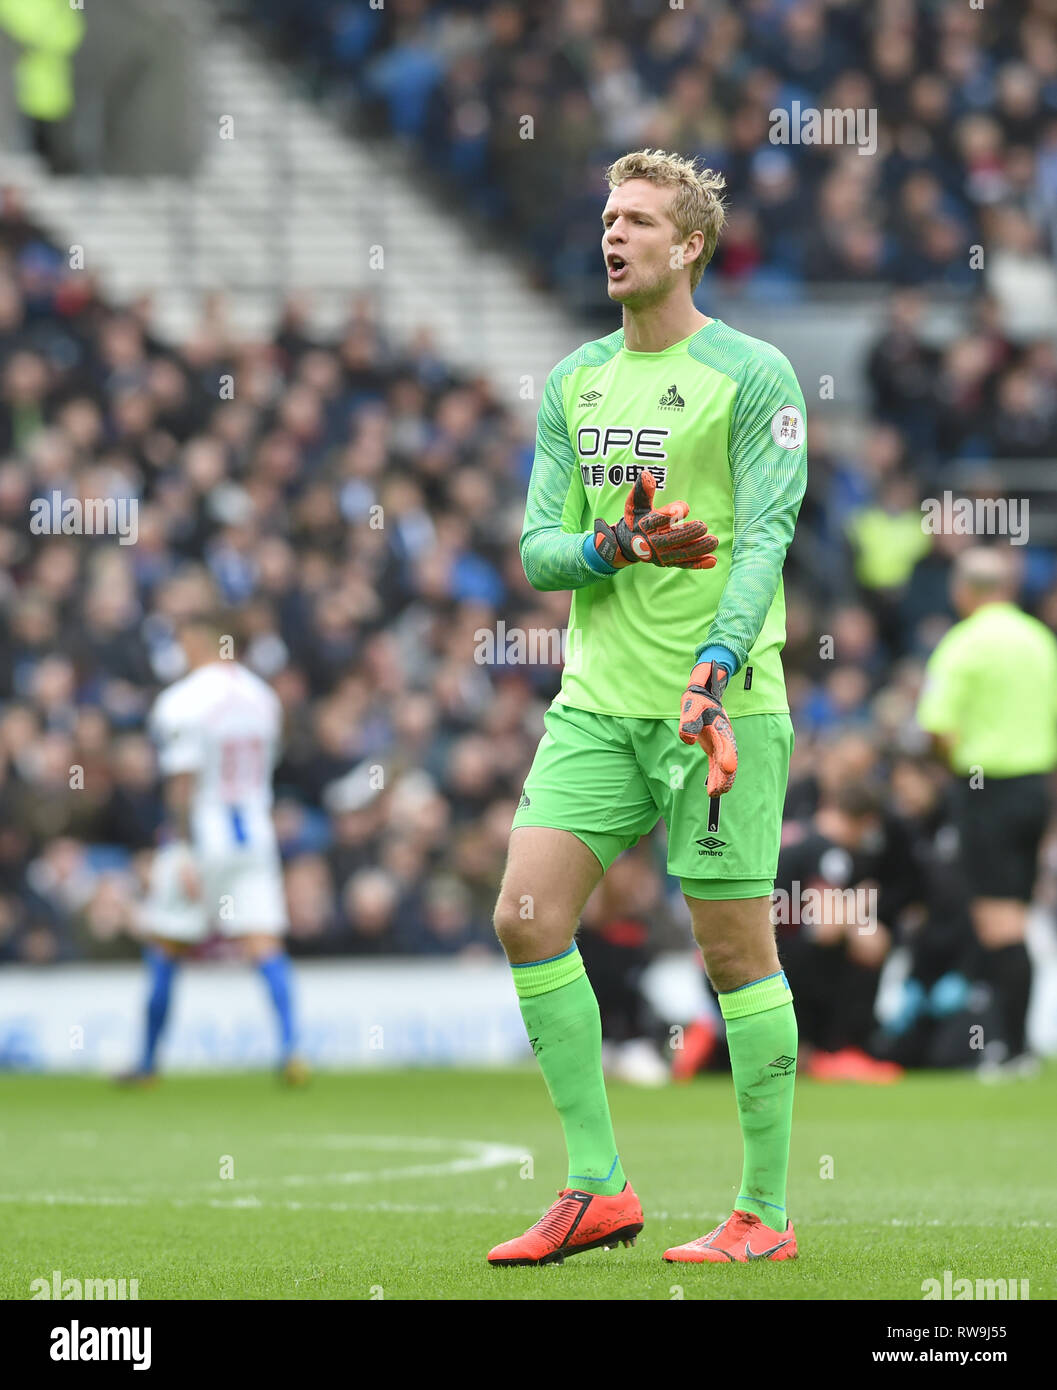 Jonas Lossl of Huddersfield during the Premier League match between Brighton & Hove Albion and Huddersfield Town at the American Express Community Stadium . 02 March 2019 Editorial use only. No merchandising. For Football images FA and Premier League restrictions apply inc. no internet/mobile usage without FAPL license - for details contact Football Dataco - Stock Image